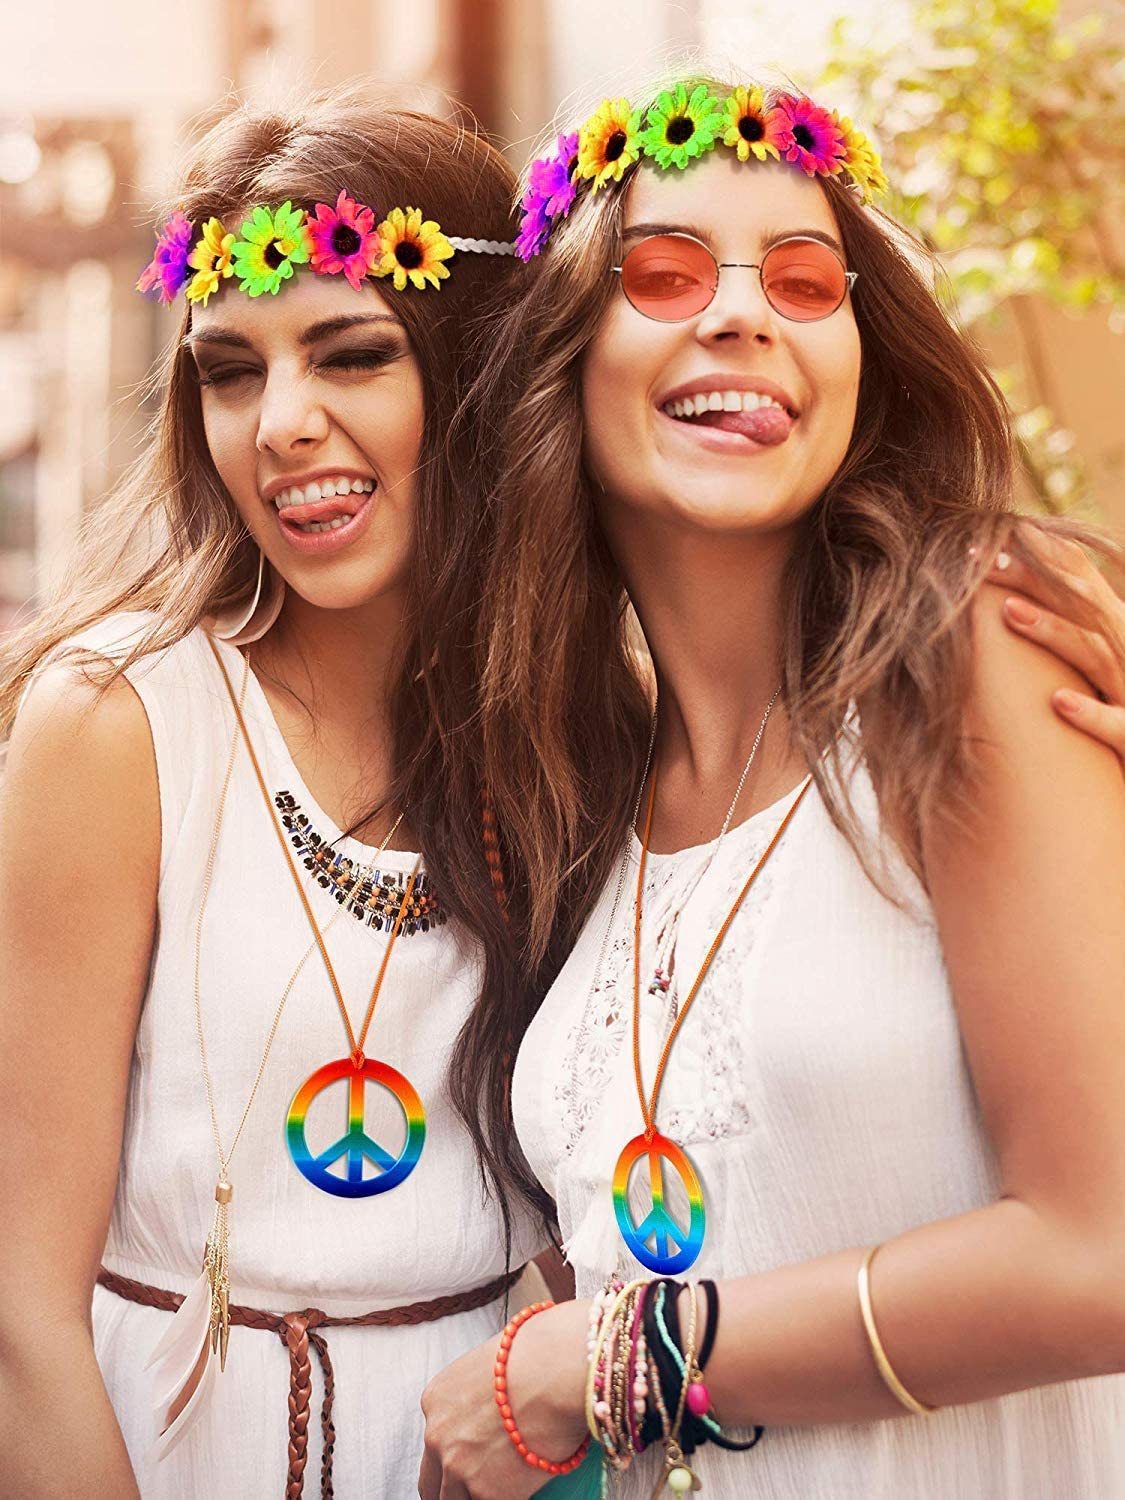 SPECOOL Conjunto de Disfraces Hippies Accesorios Hippies Arcoiris ...